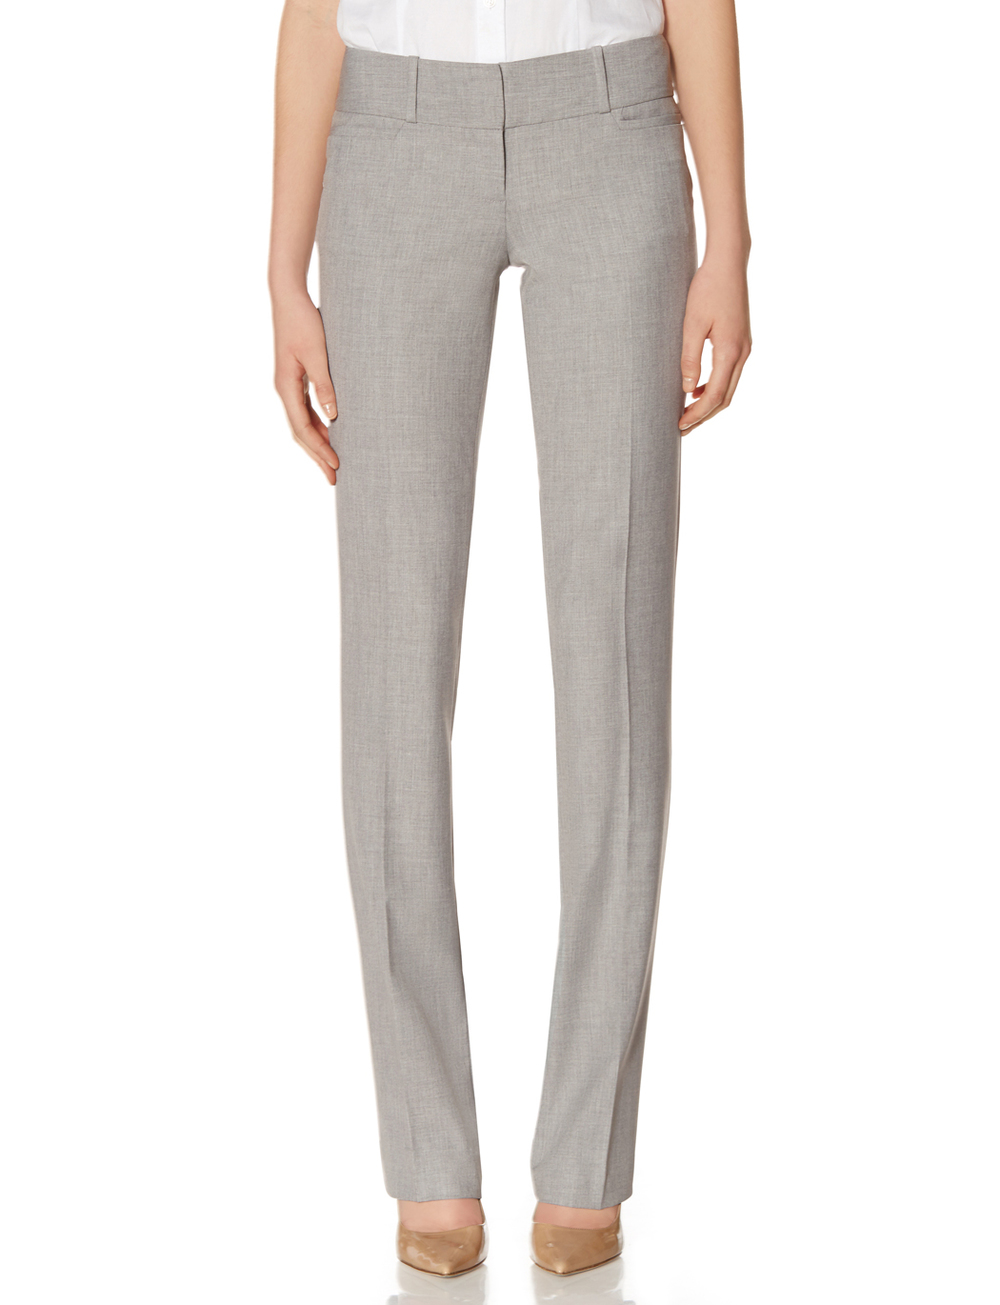 Drew bootcut pants. Available in petites in light grey, black, navy, camel, natural. The Limited. Was: $79.95 Now: $49.90.